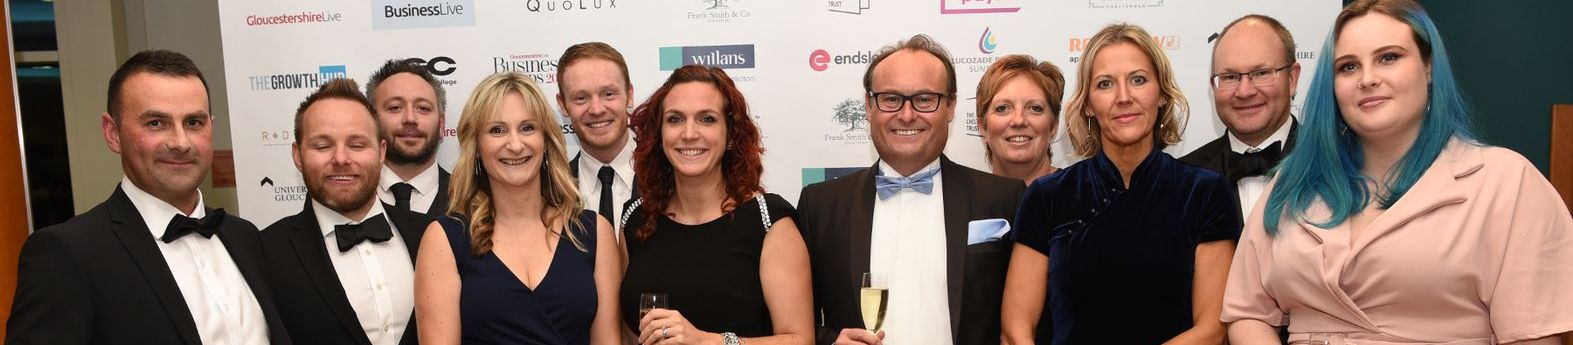 Sanctus Business Awards.jpg